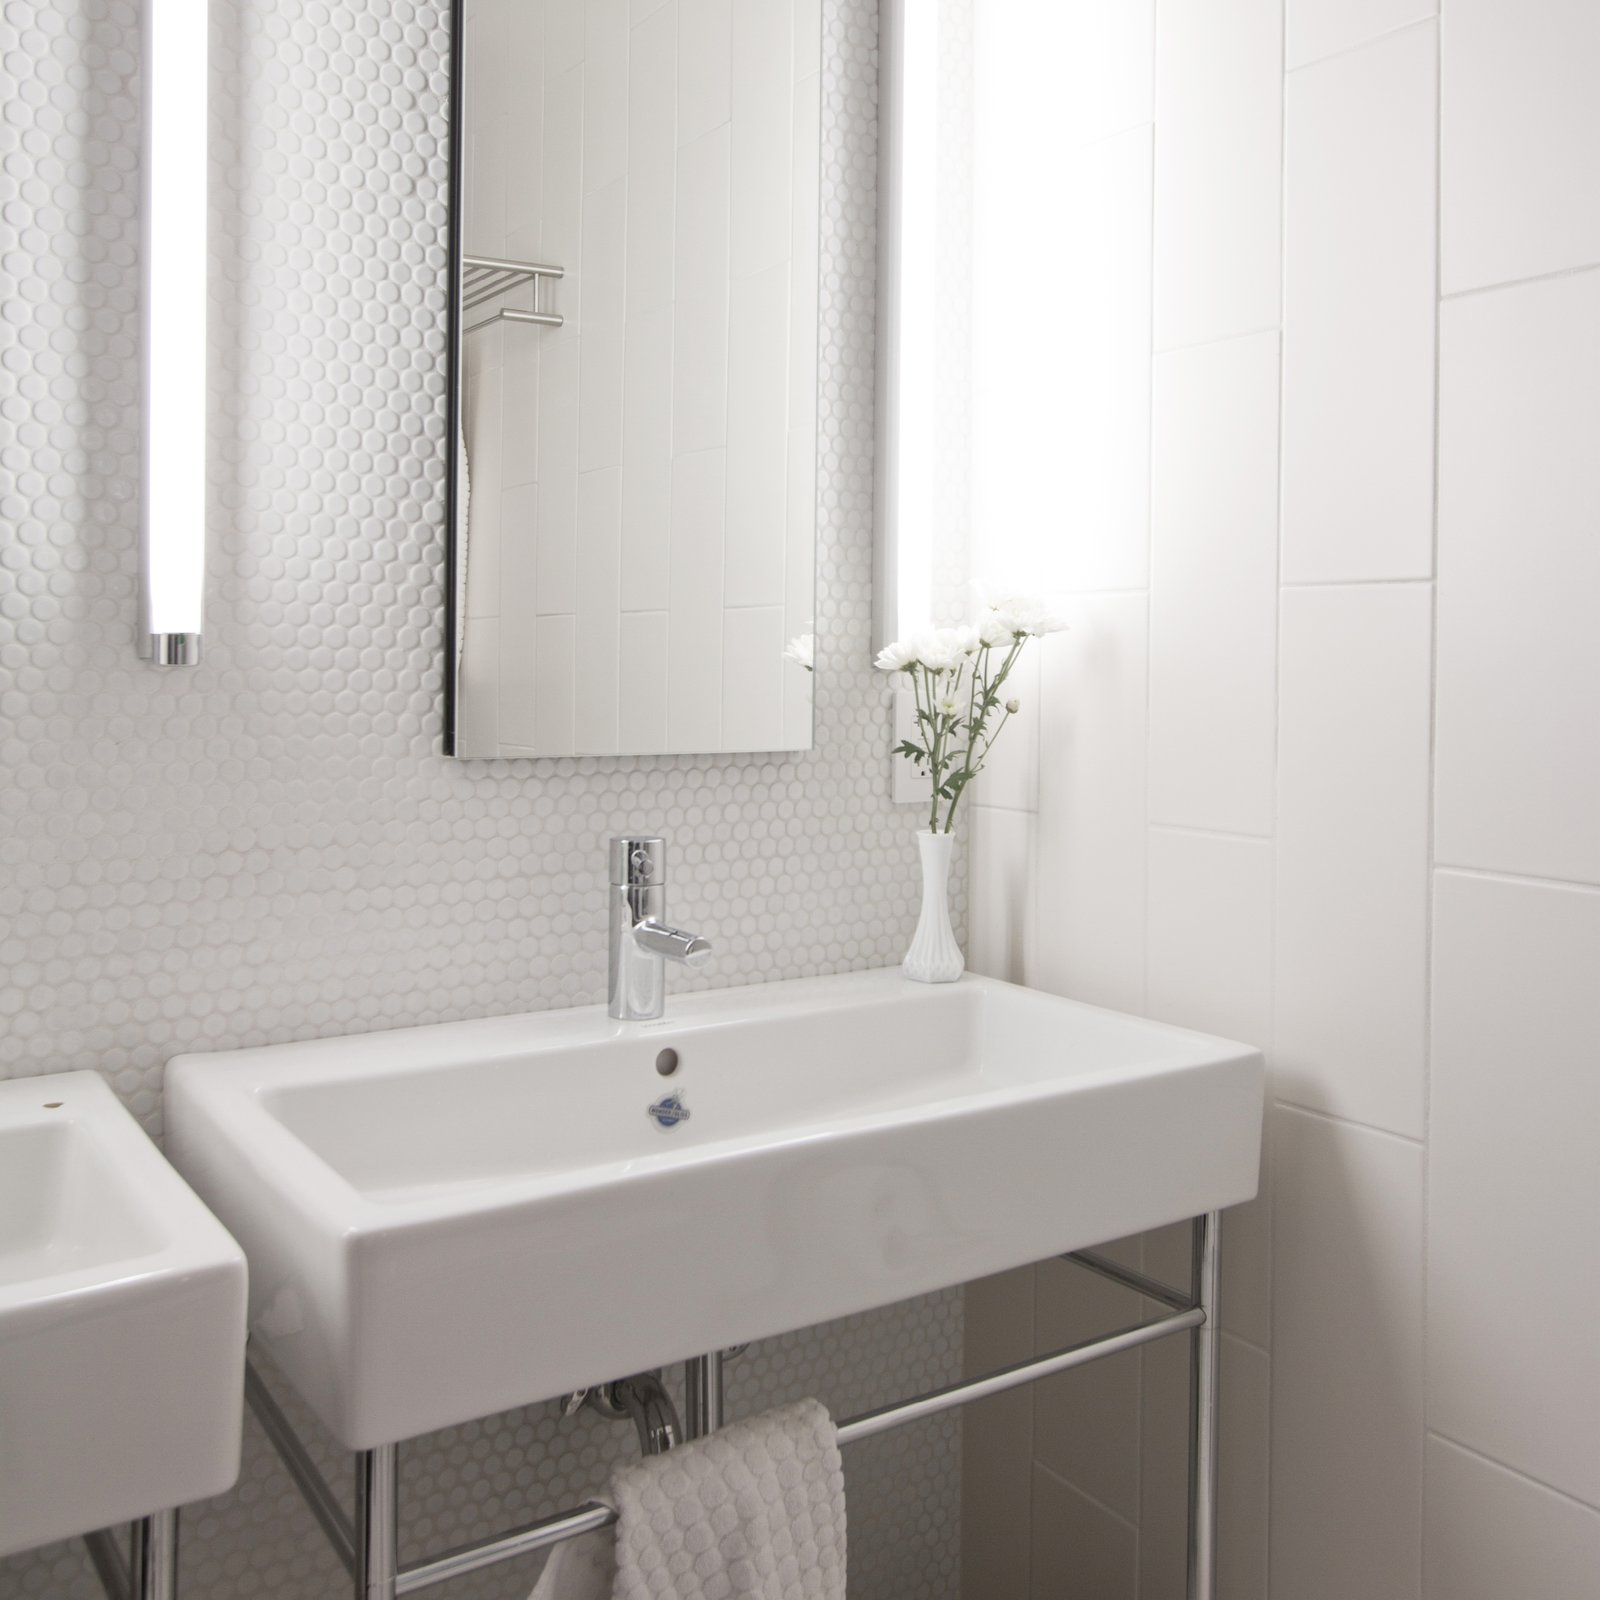 The main bathroom experiments with varying textured tiles, and is equipped with Duravit, American Stand, Toto and Kohler fixtures.